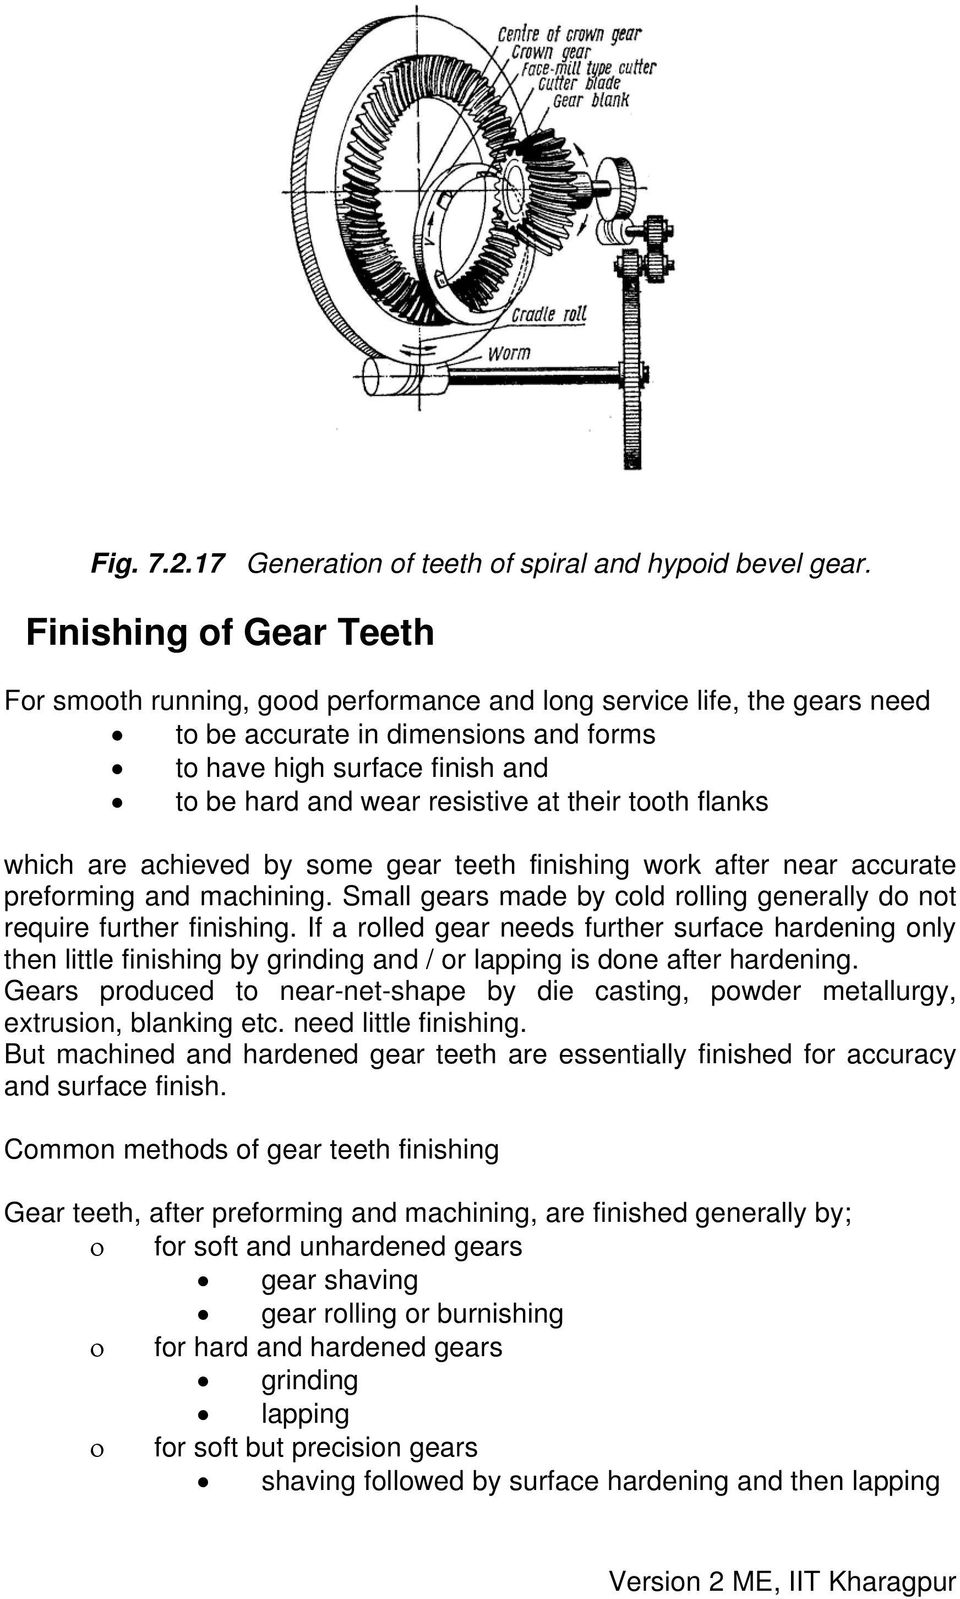 at their tooth flanks which are achieved by some gear teeth finishing work after near accurate preforming and machining. Small gears made by cold rolling generally do not require further finishing.